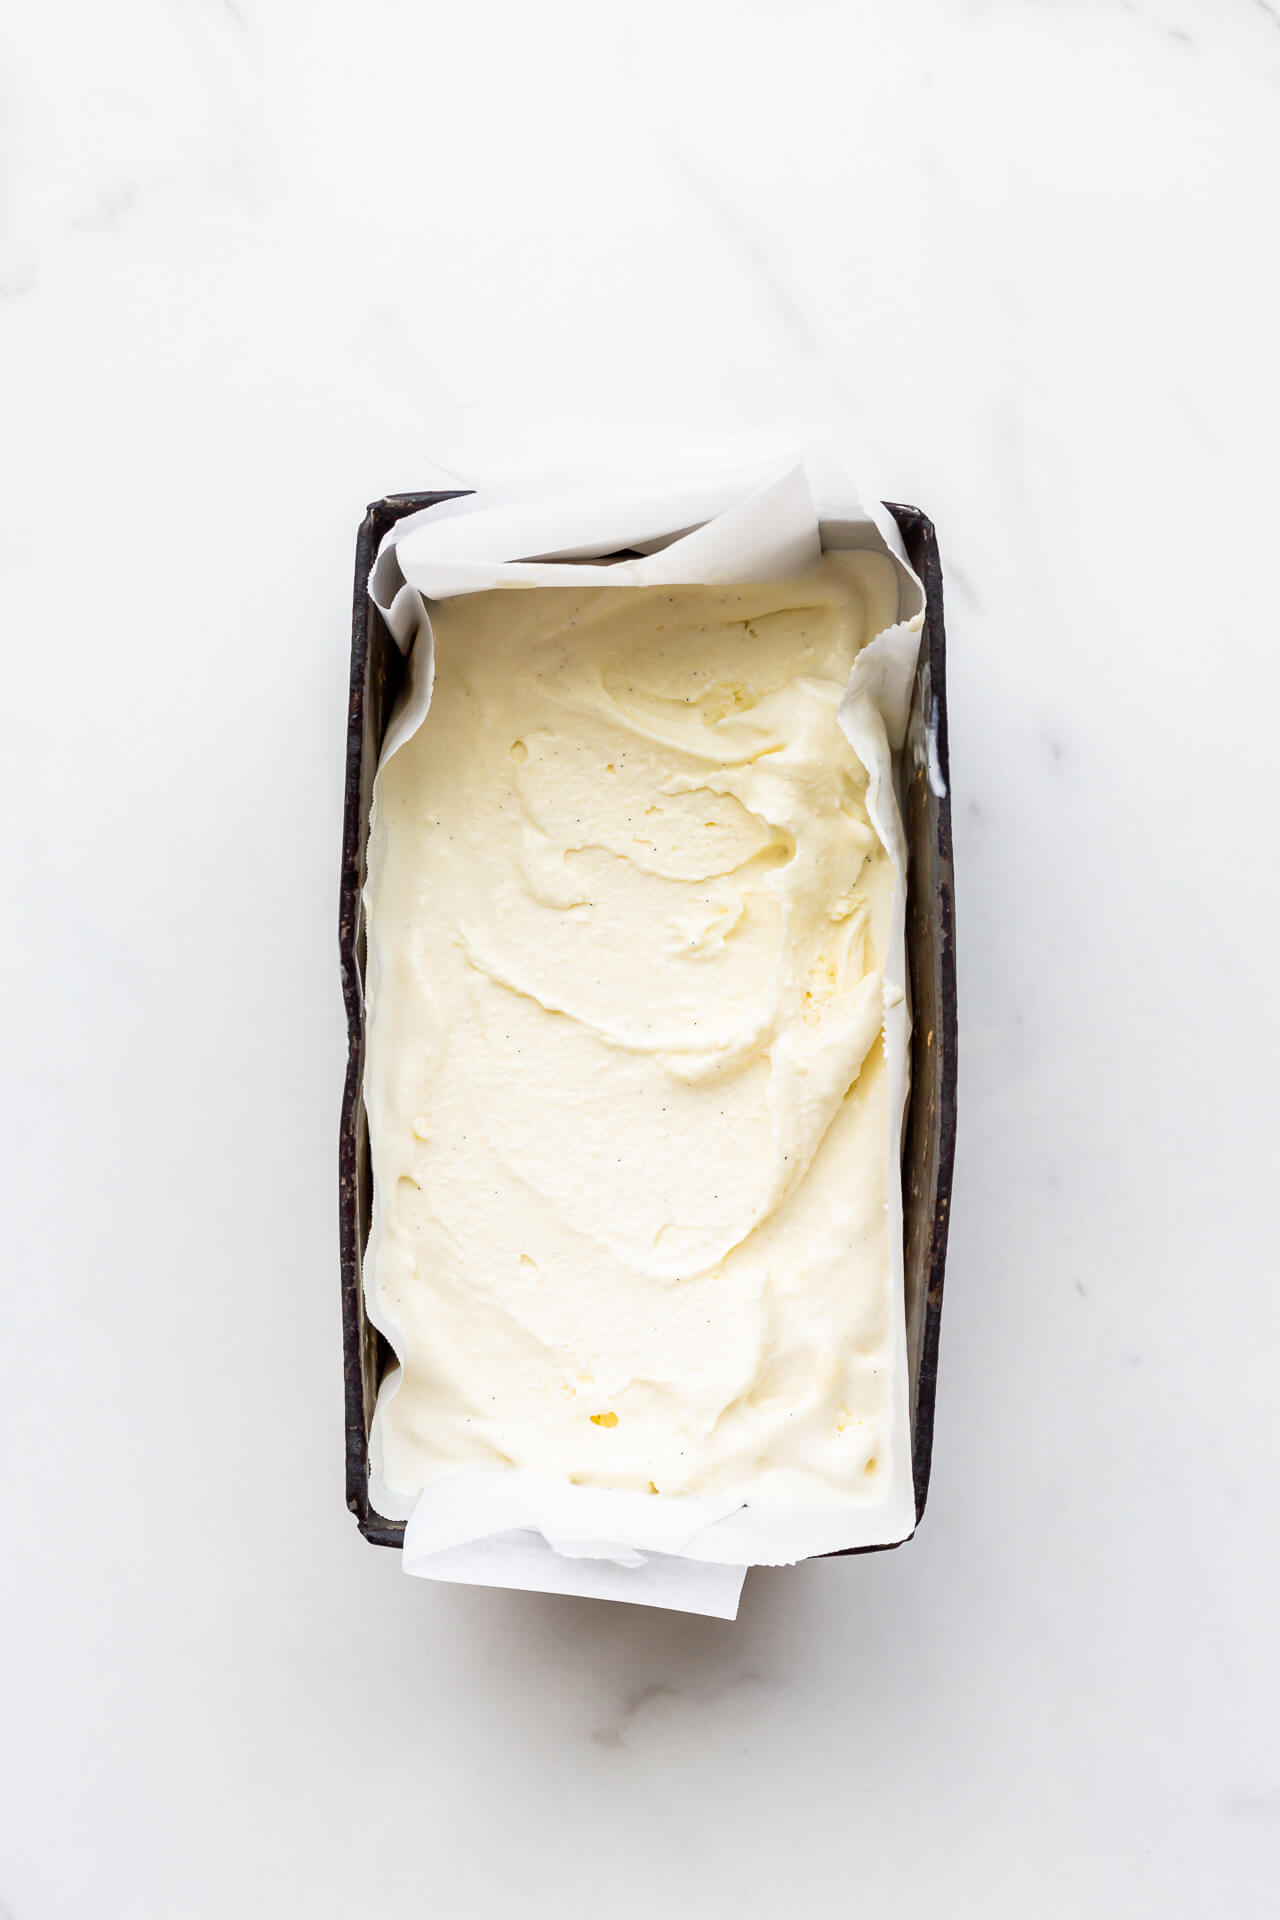 Freshly churned cardamom ice cream transfered to a big dark loaf pan to chill until frozen solid